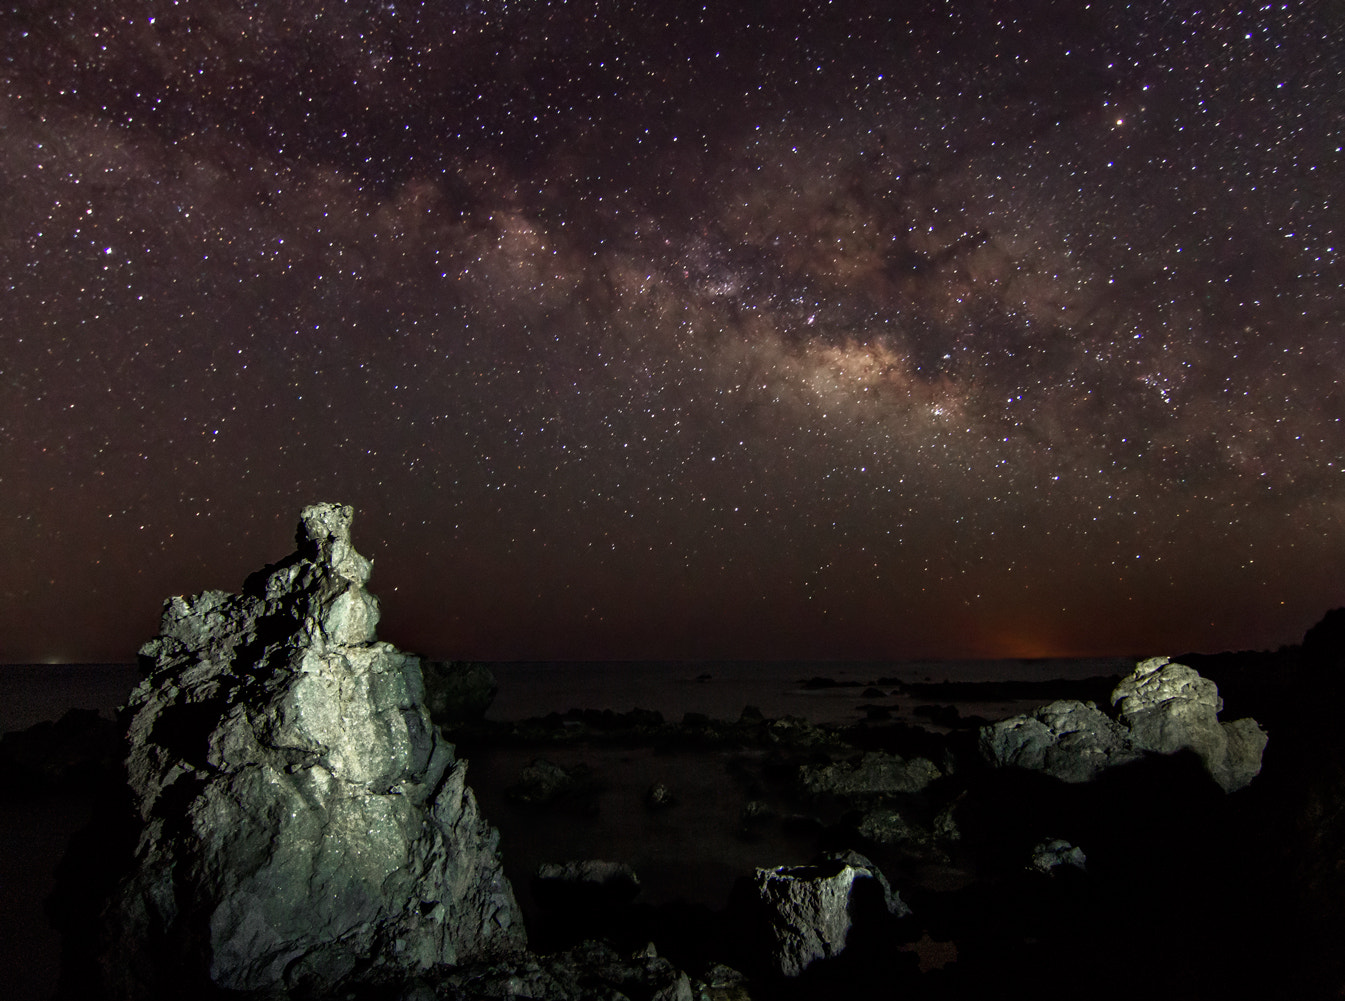 Photograph Milky Way from Toneles. by Pedro López Batista on 500px